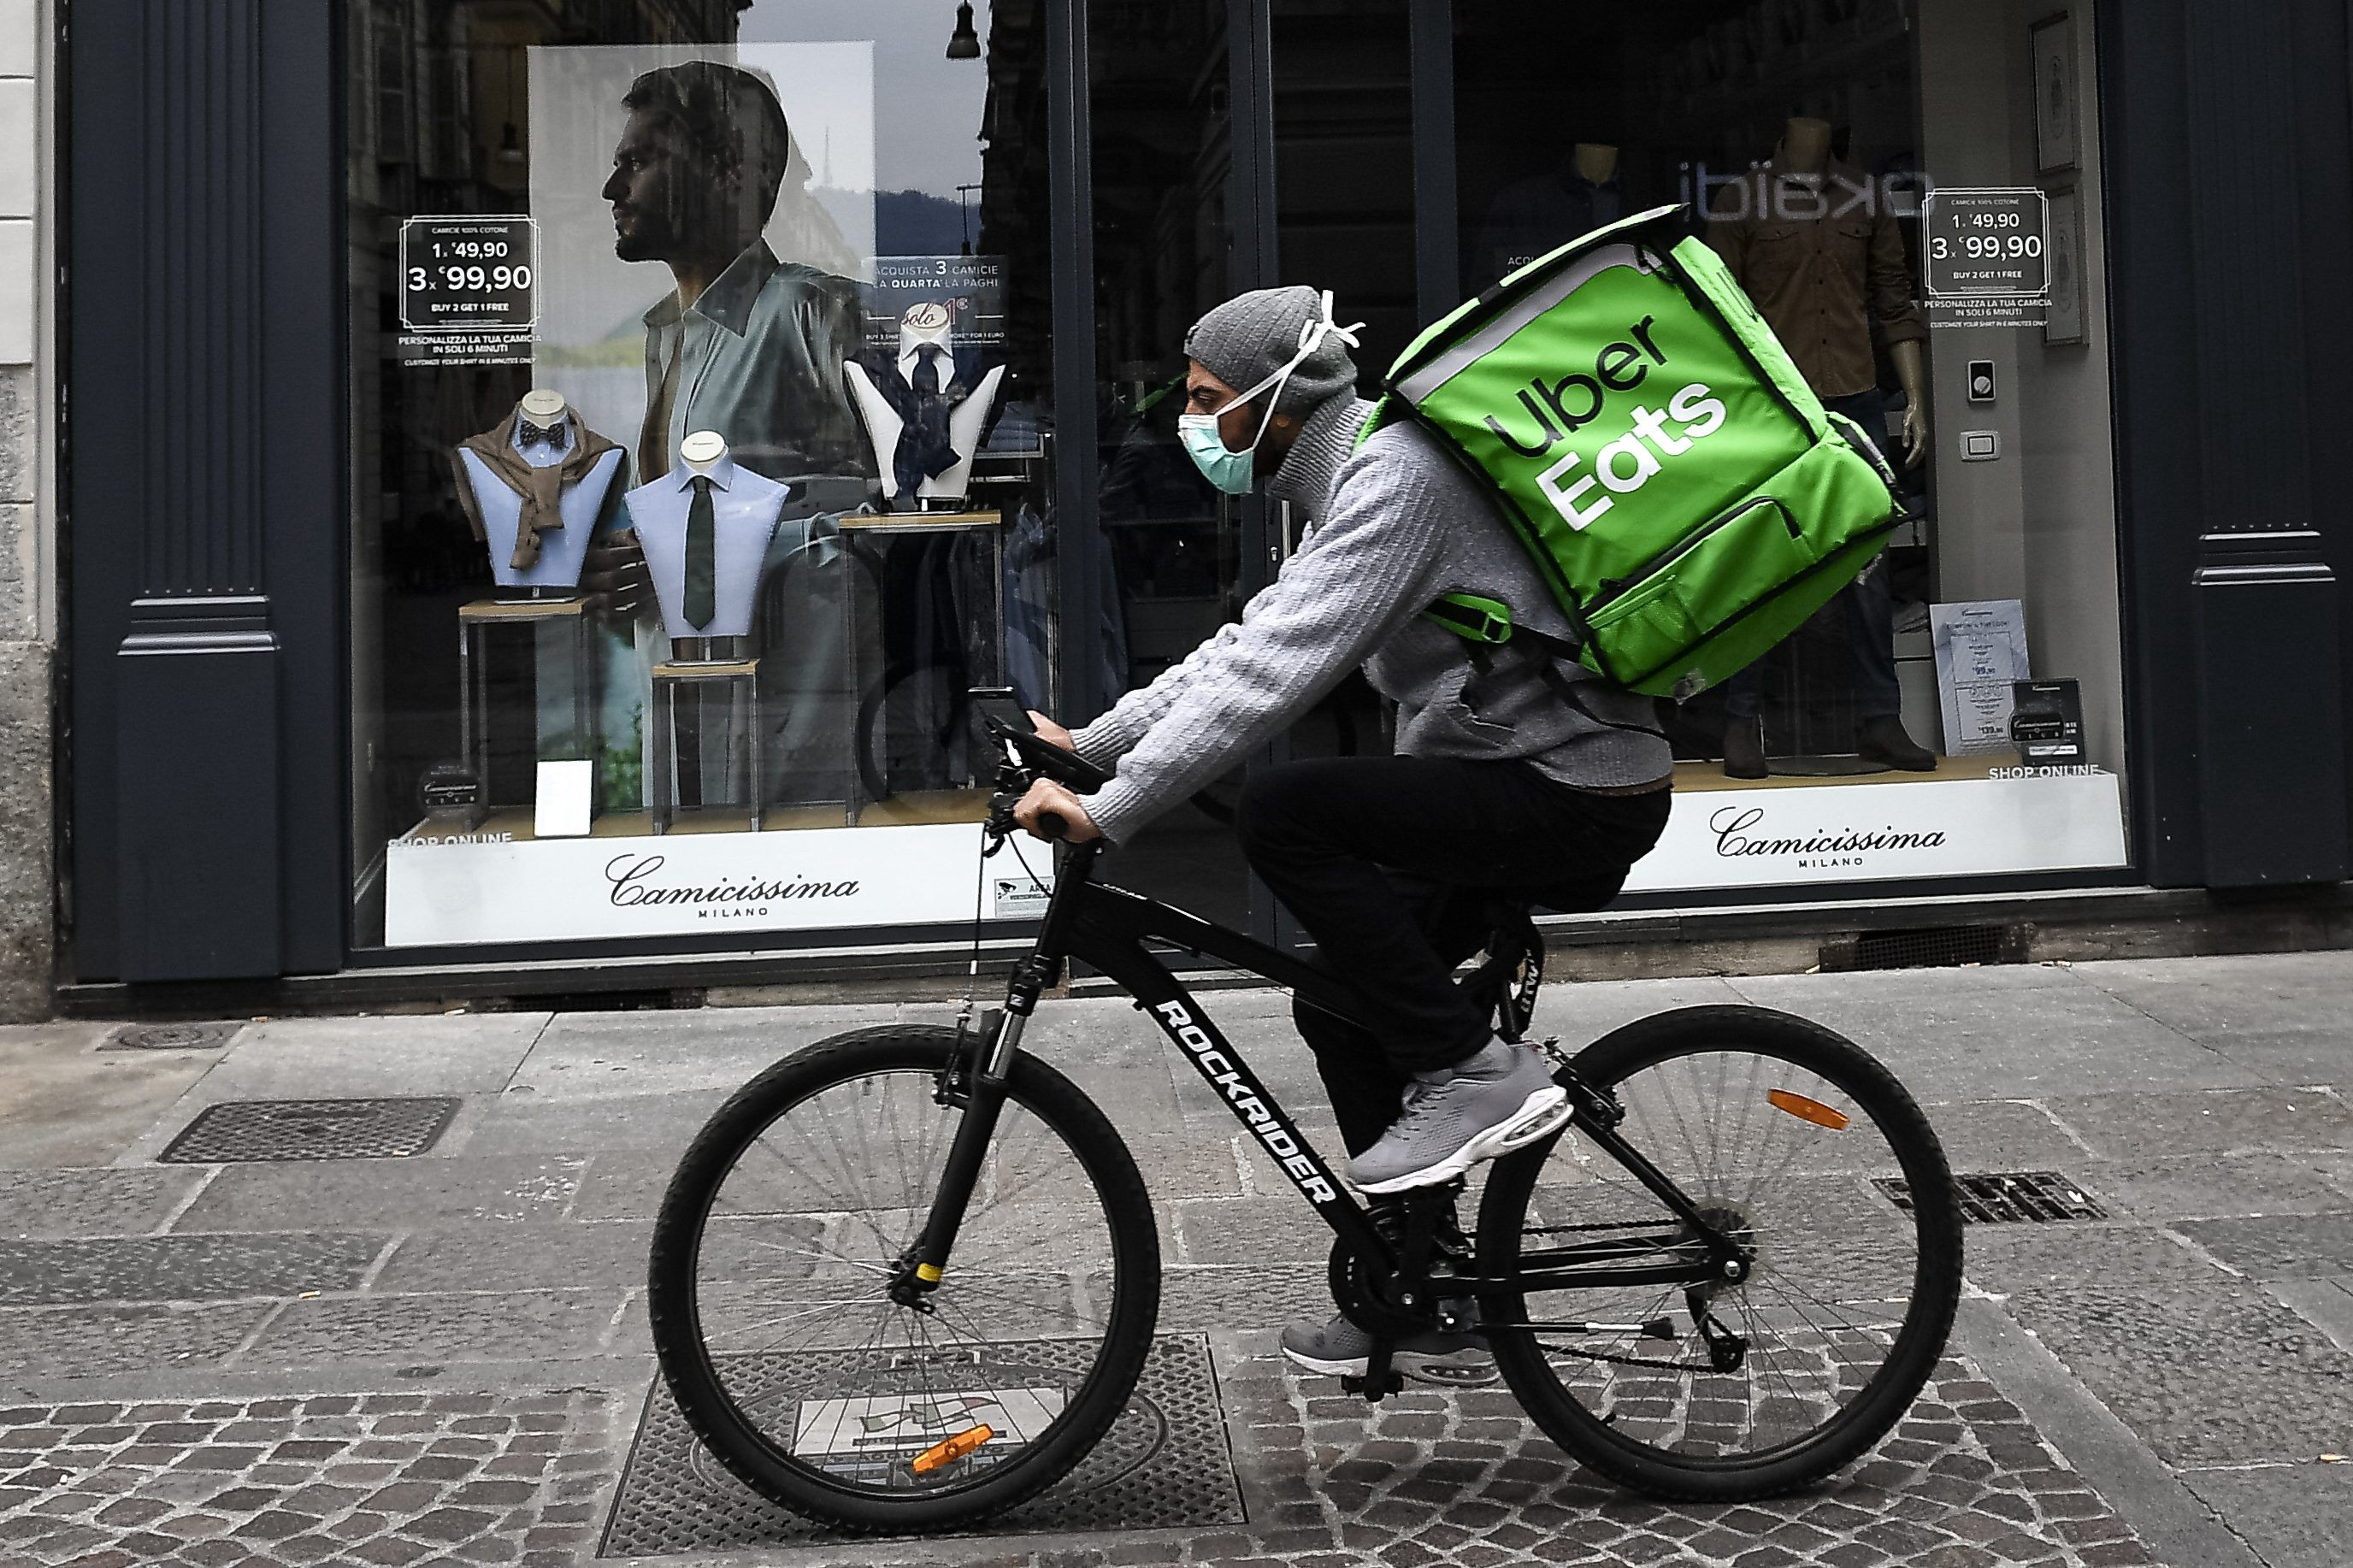 An UberEats delivery-person on a bike.